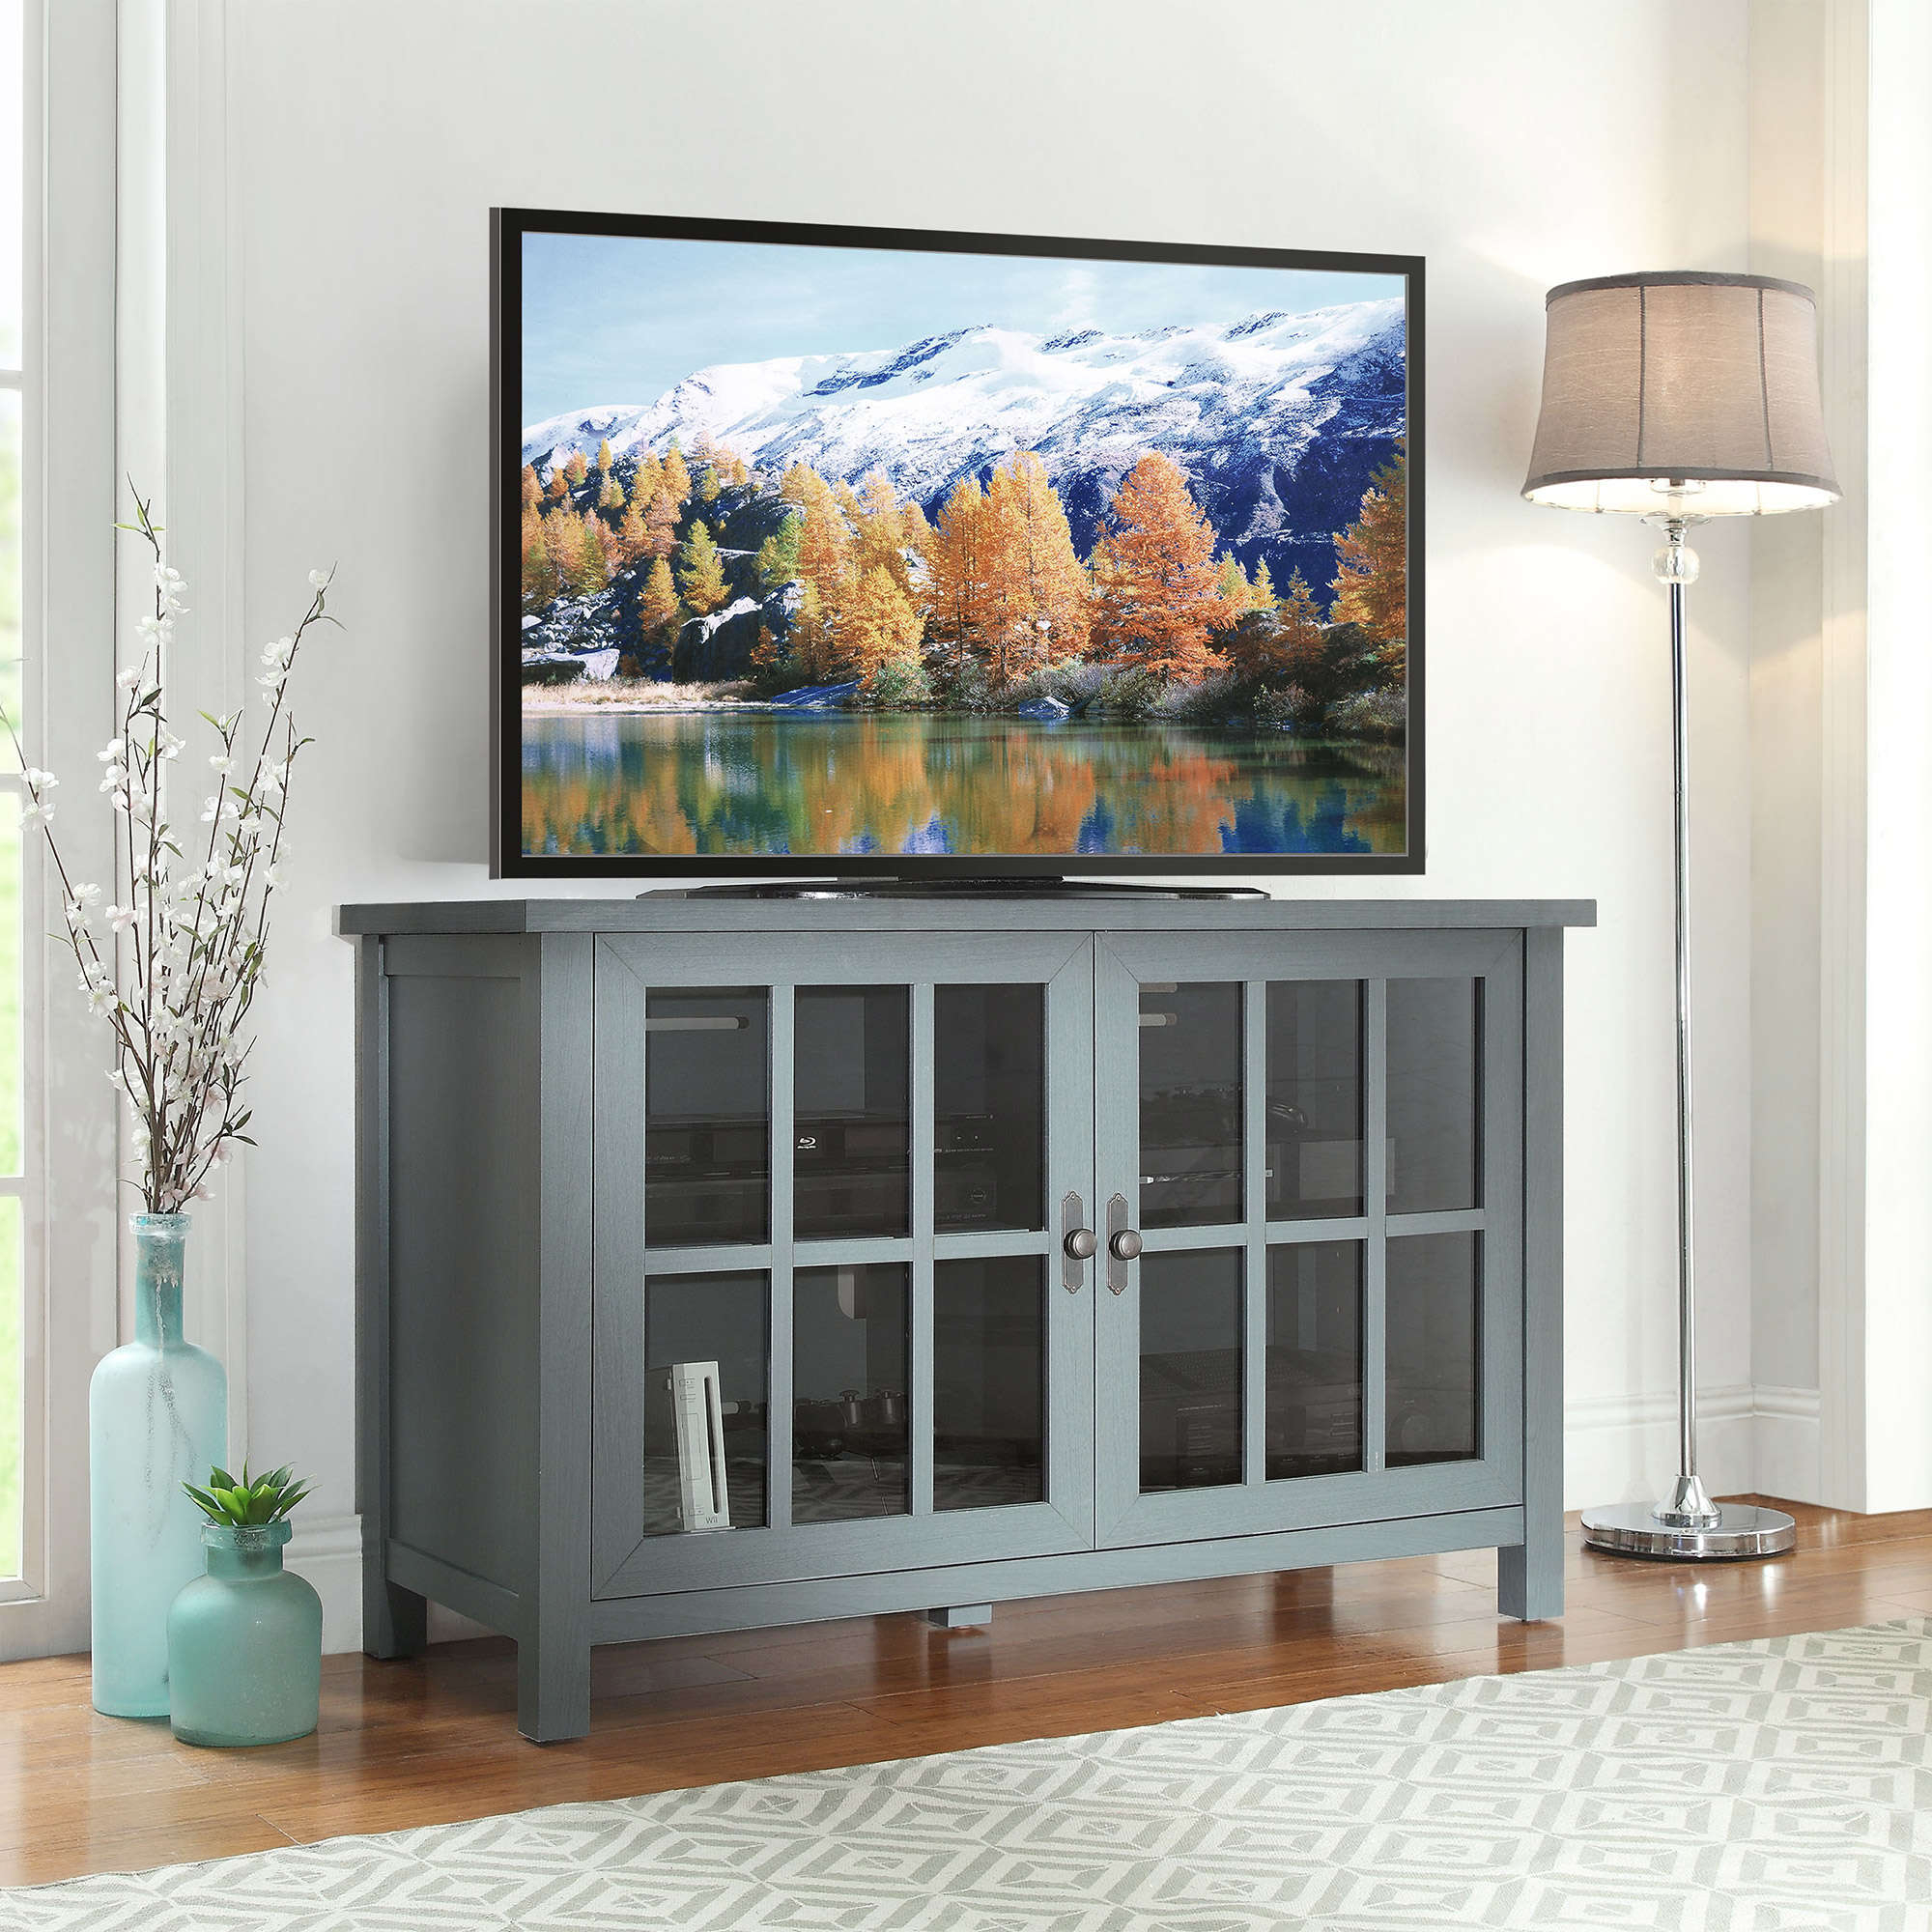 Better Homes And Gardens Oxford Square Tv Console For Tvs Up To 55 regarding Oxford 70 Inch Tv Stands (Image 7 of 30)